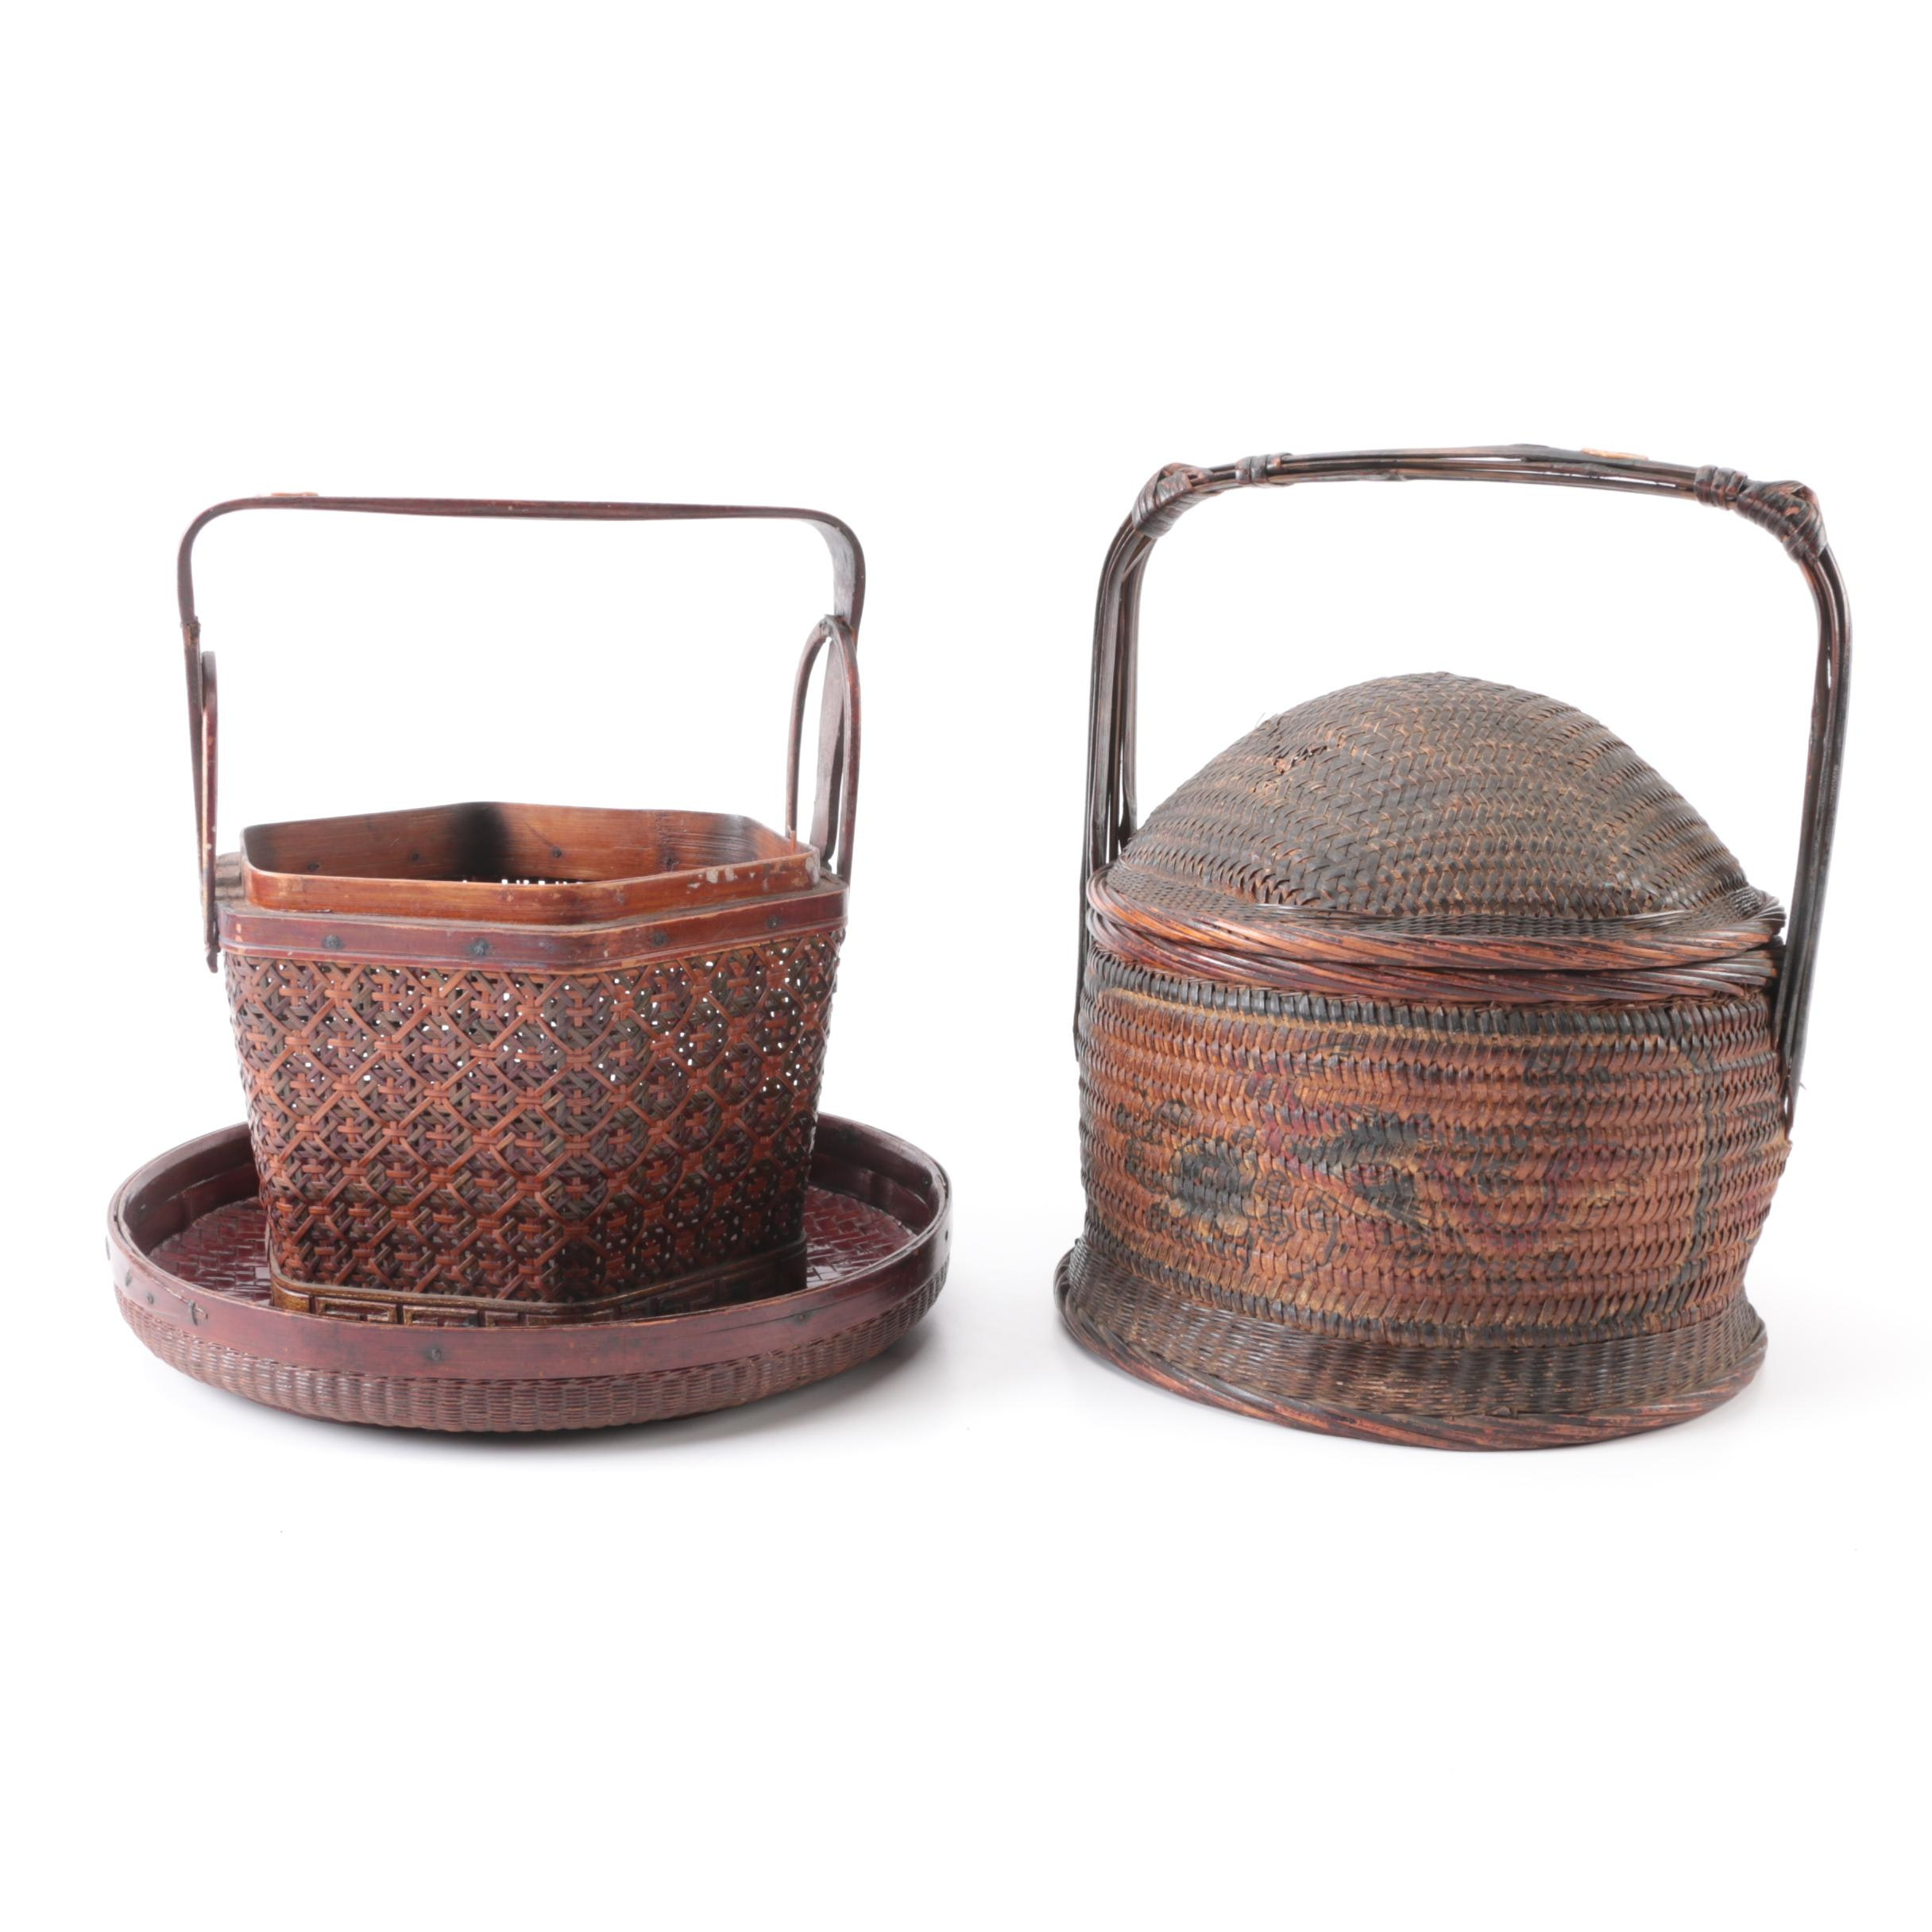 Vintage Chinese Rice Baskets and Winnowing Basket